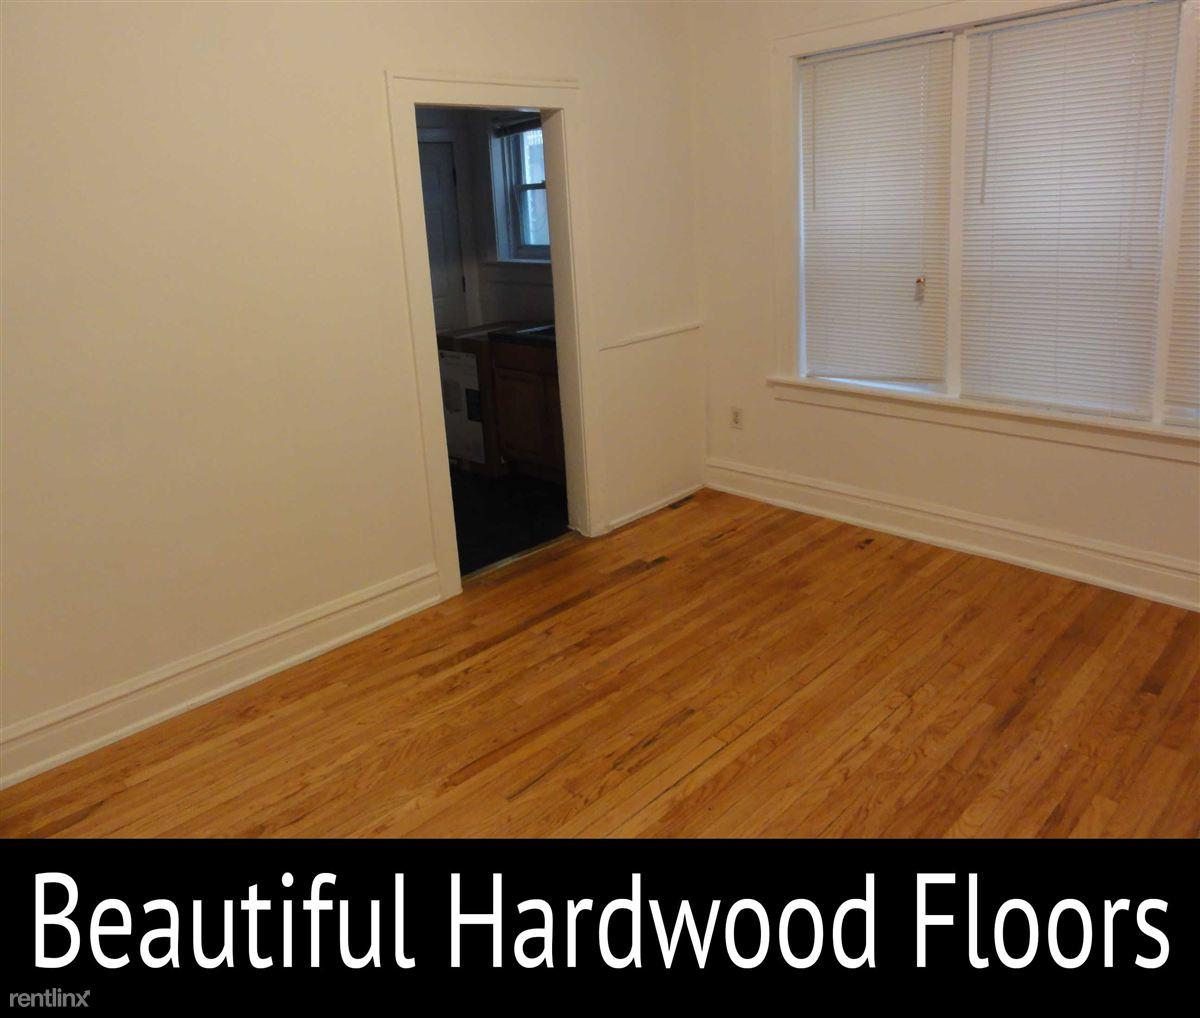 South Lakeside Properties Apartments photo #1